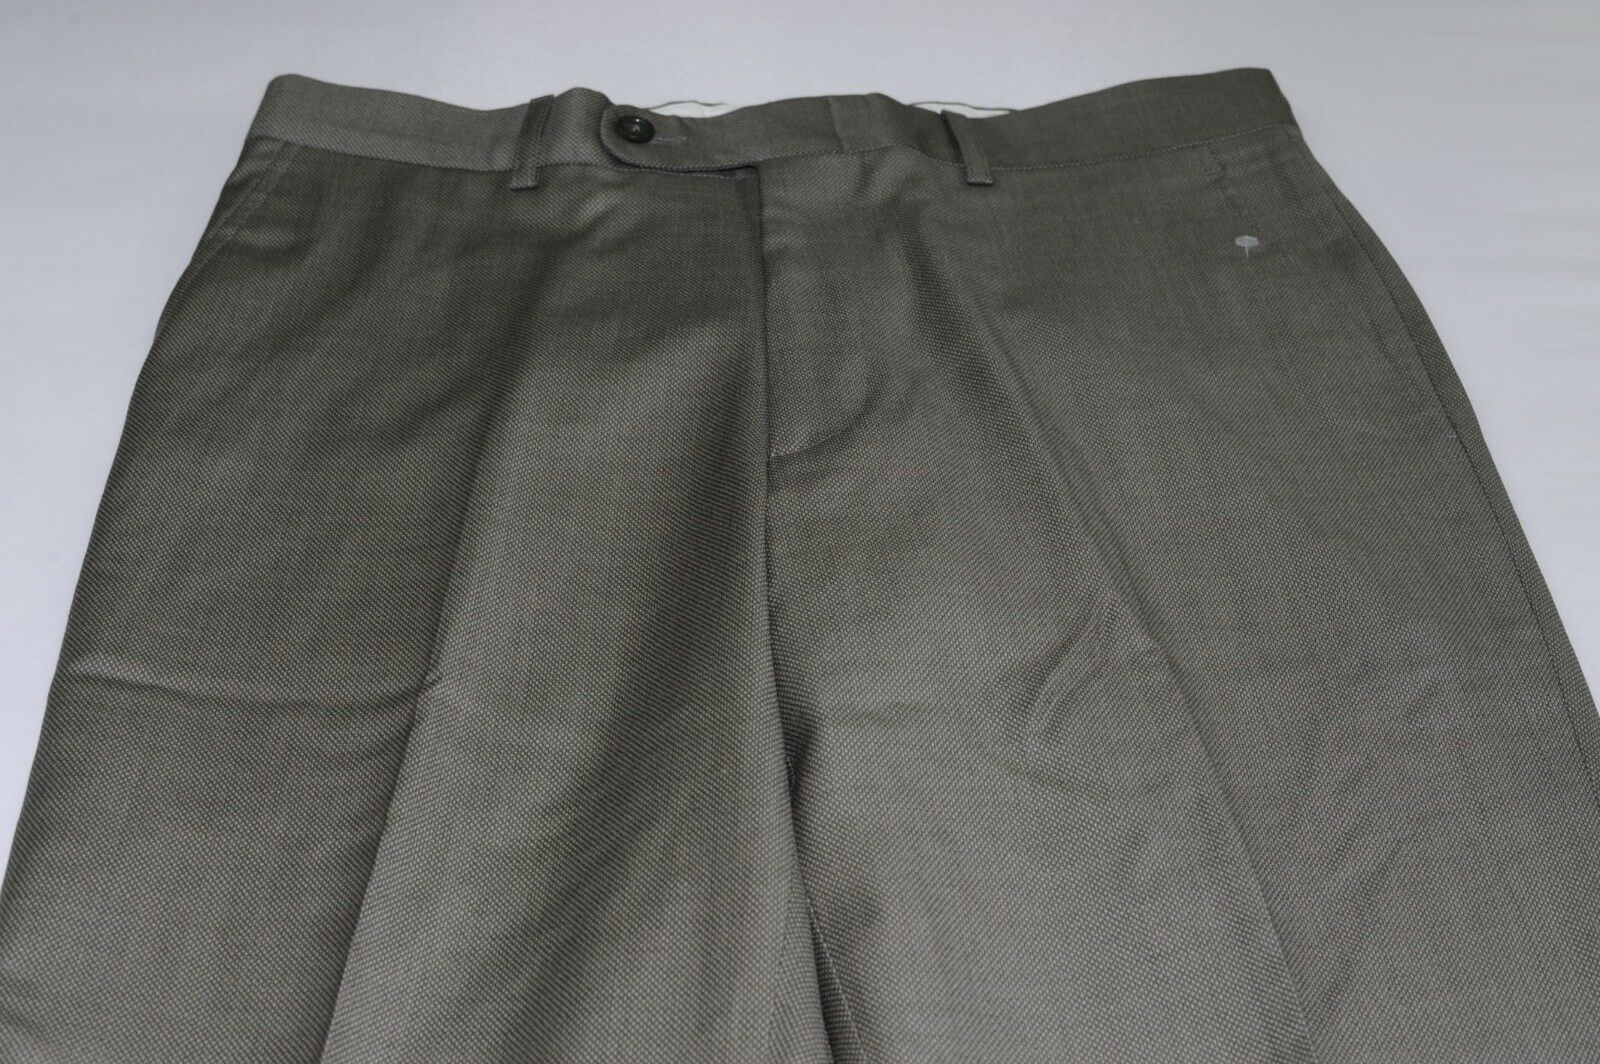 NWOT Linea Naturale Men's 100% Wool Flat Front Dress Pants 32 Made in